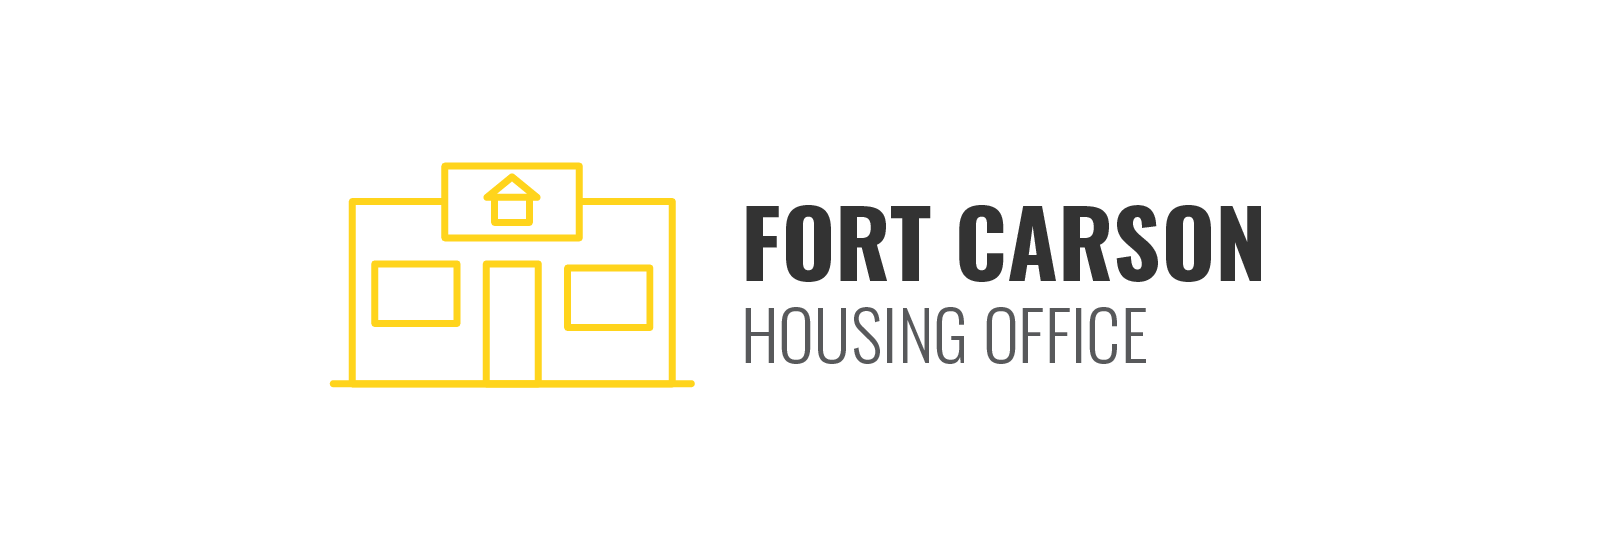 Fort Carson Housing Office